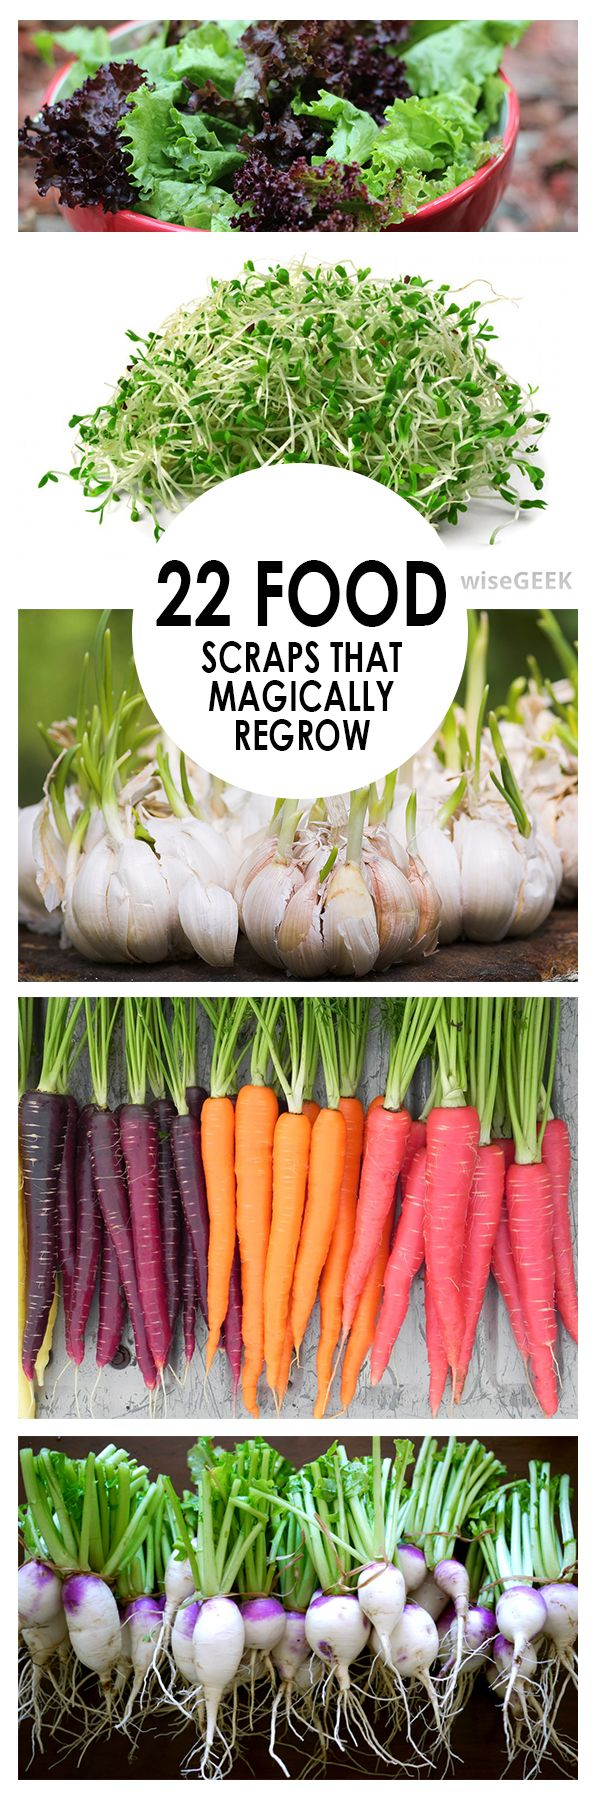 22 Food Scraps that Magically Regrow